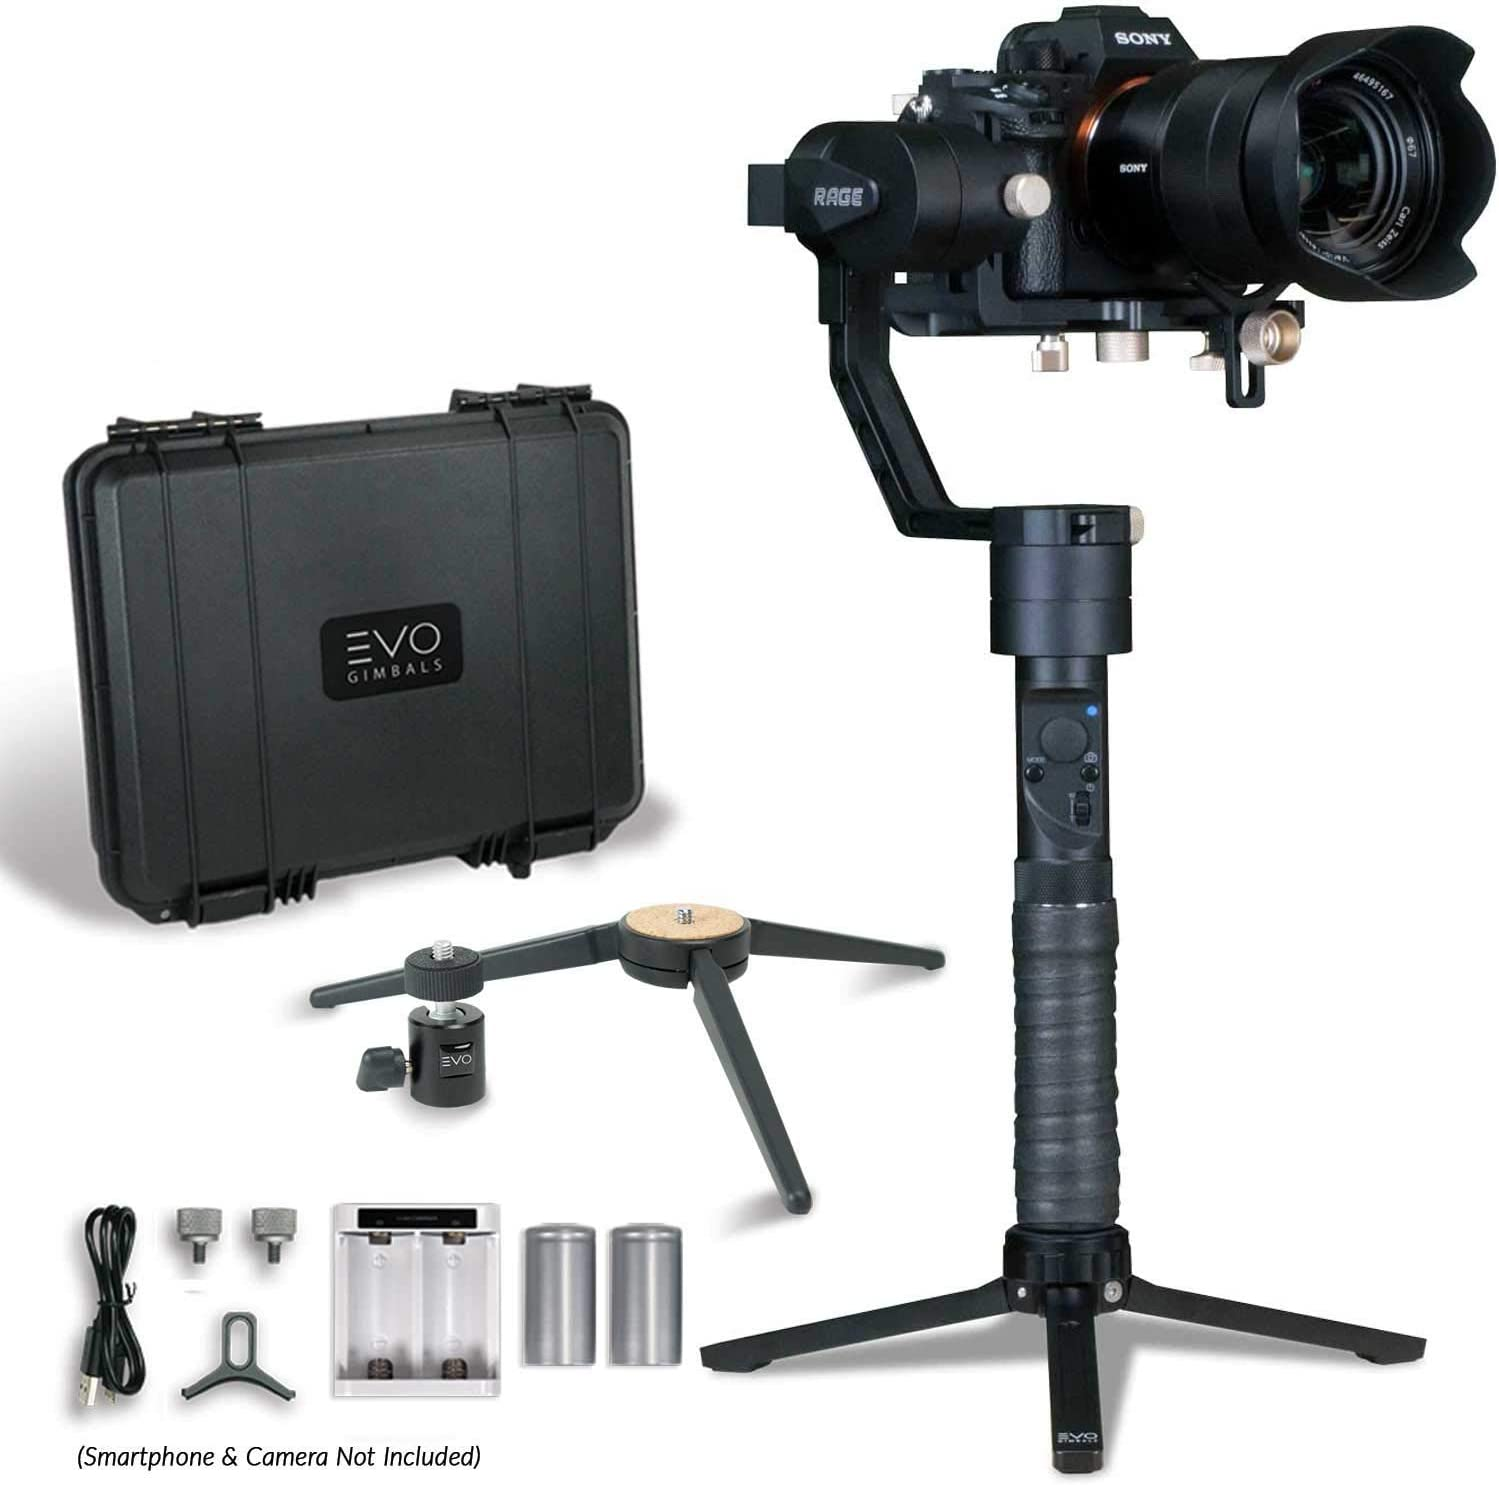 Bundle Includes: EVO Rage Gen2 2 Items EVO Rage Gen2 Camera Stabilizer for DSLR or Mirrorless Cameras EVO GS-150 Tripod Stand Works with Sony A7S II Panasonic GH4 GH5